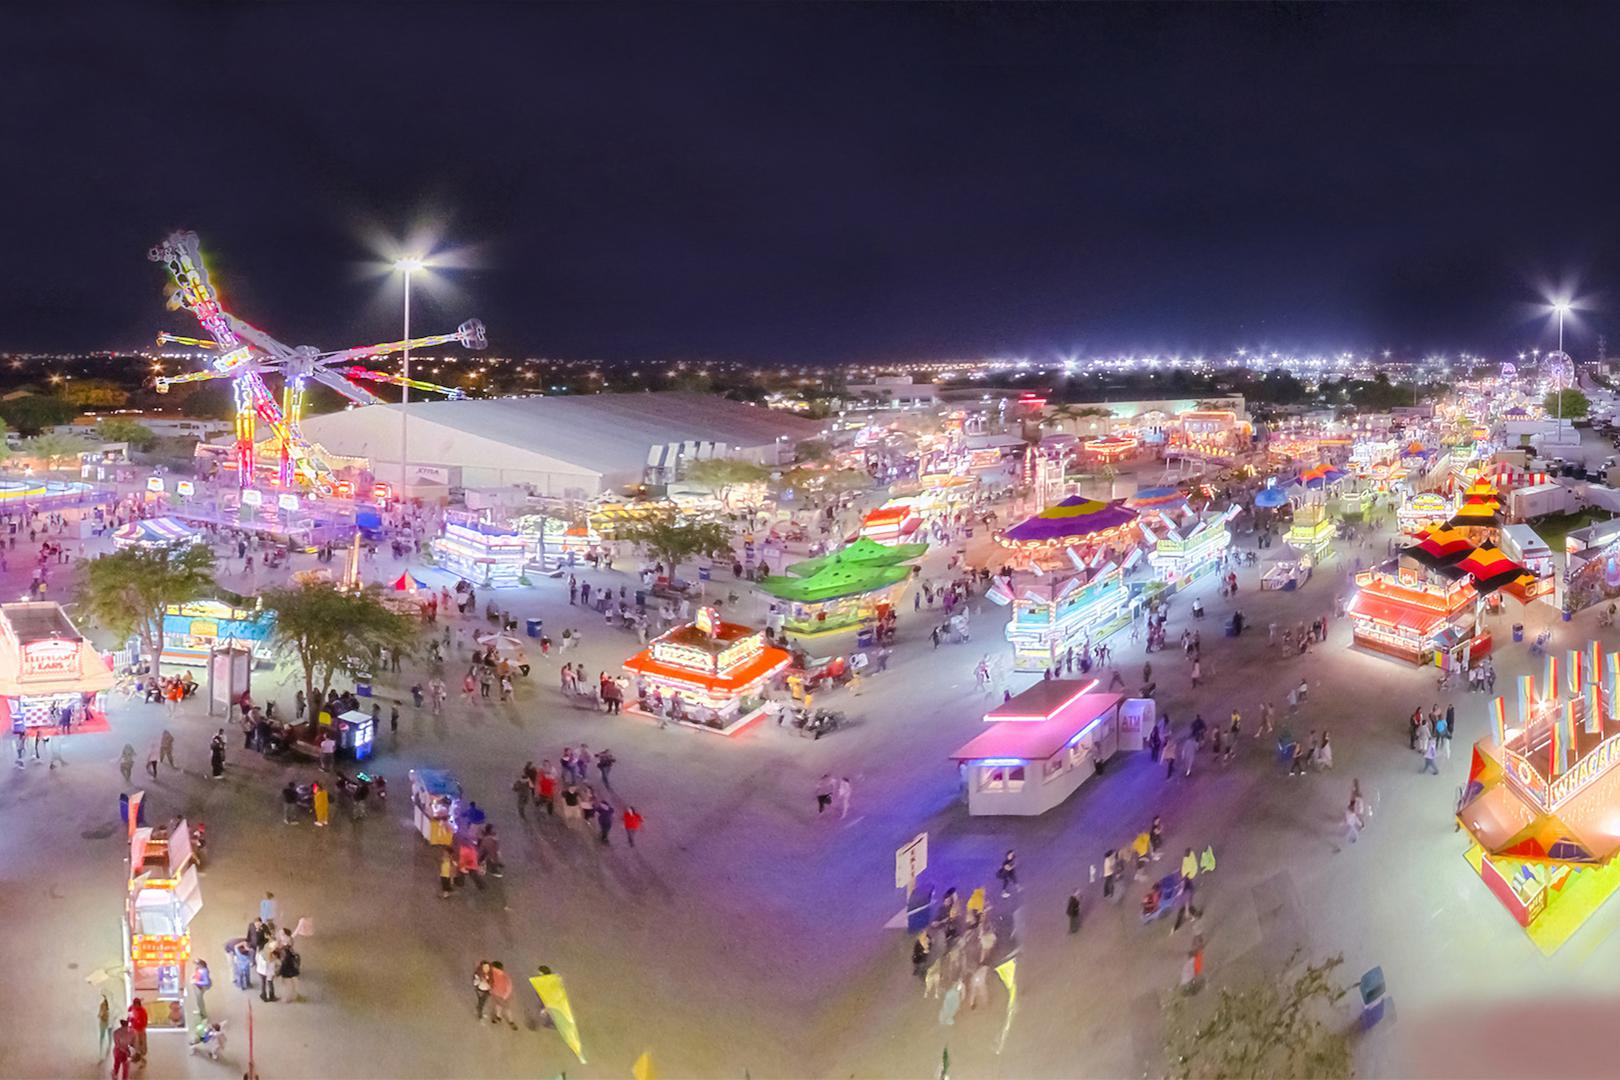 space at Miami Dade Country Fair and Exposition,